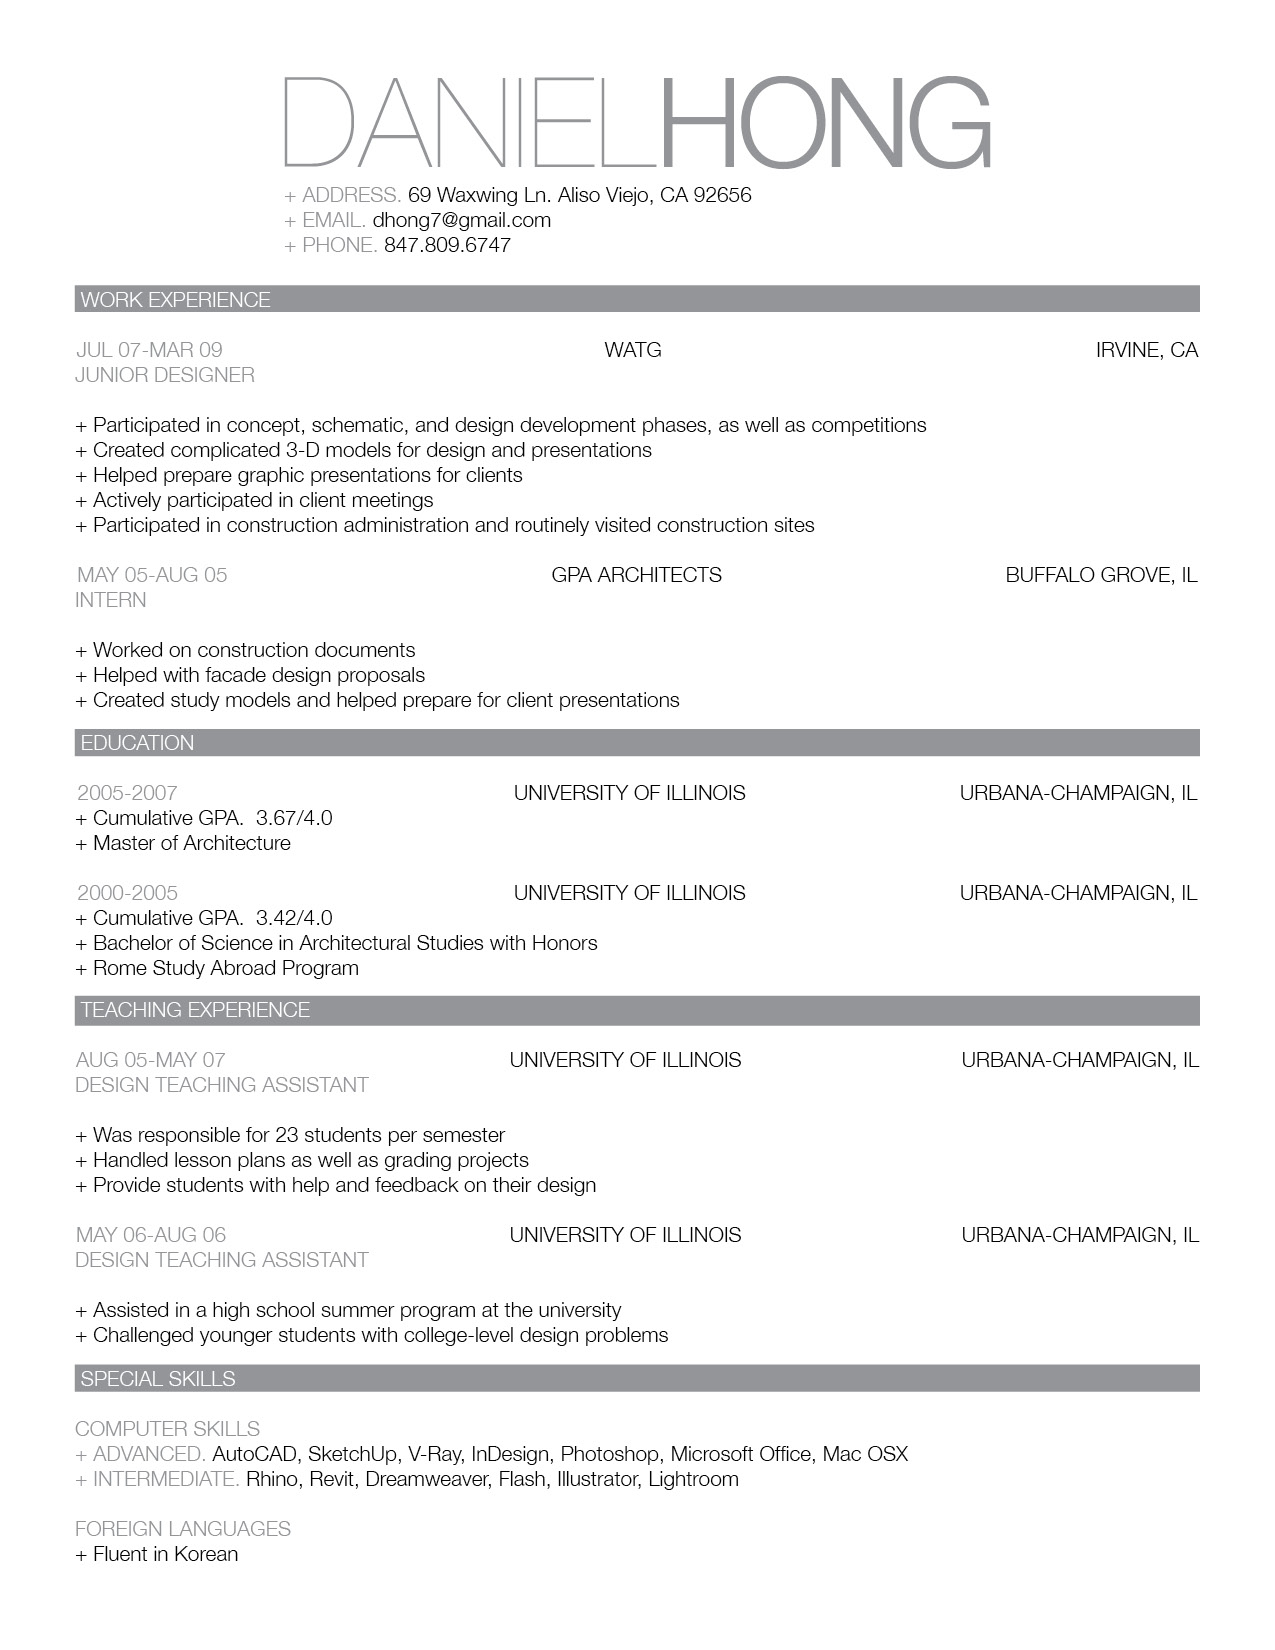 sample curriculum vitae security guard best online resume builder sample curriculum vitae security guard professional security officer resume example livecareer sample it resumes and sample